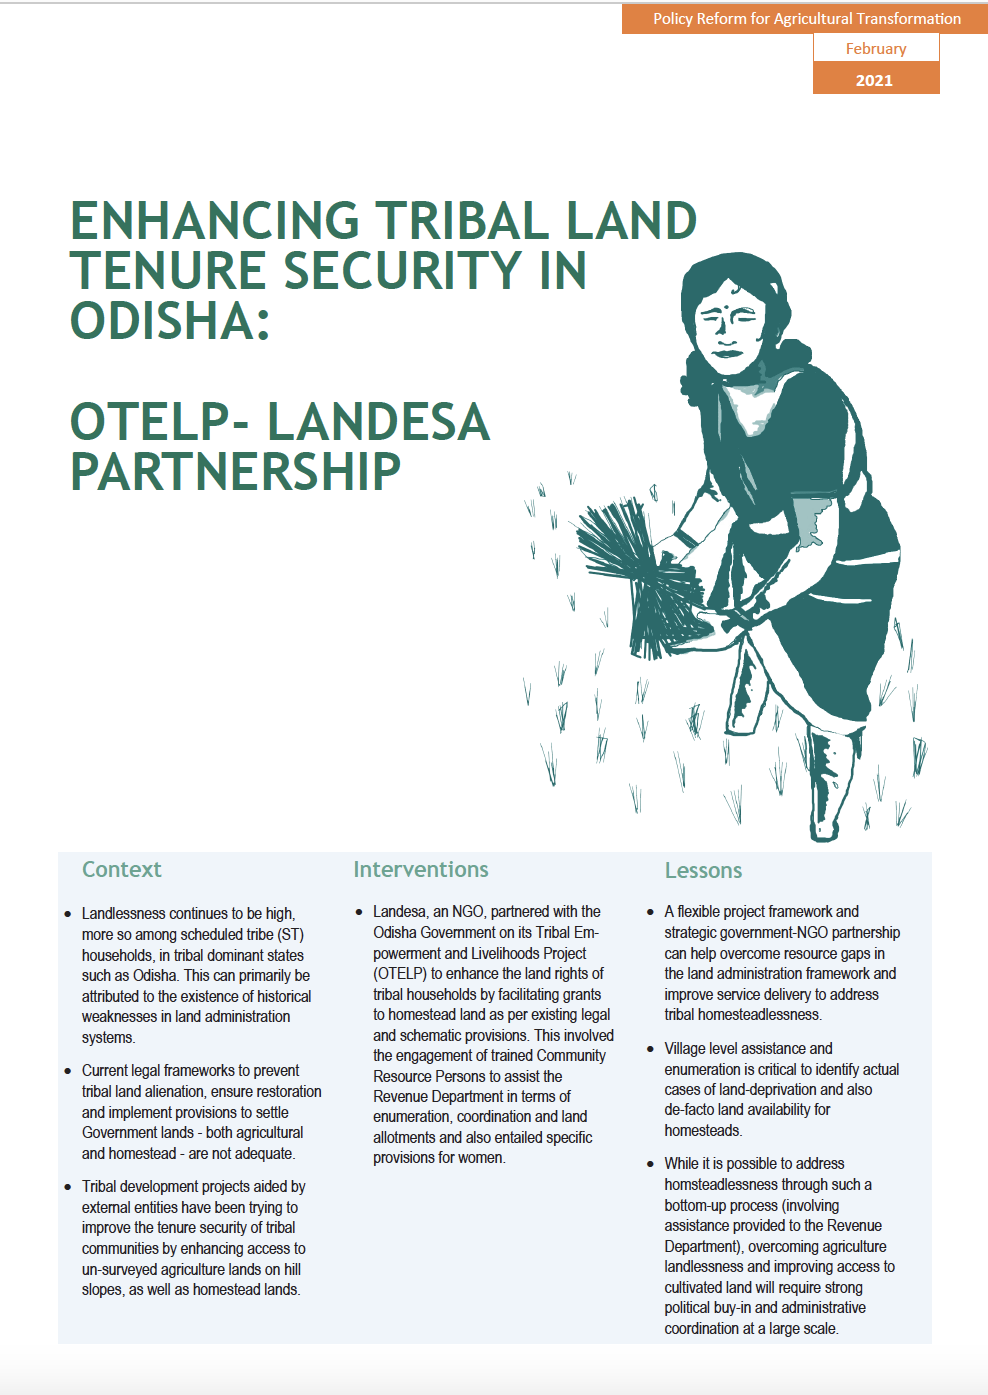 Enhancing Tribal Land Tenure Security in Odisha